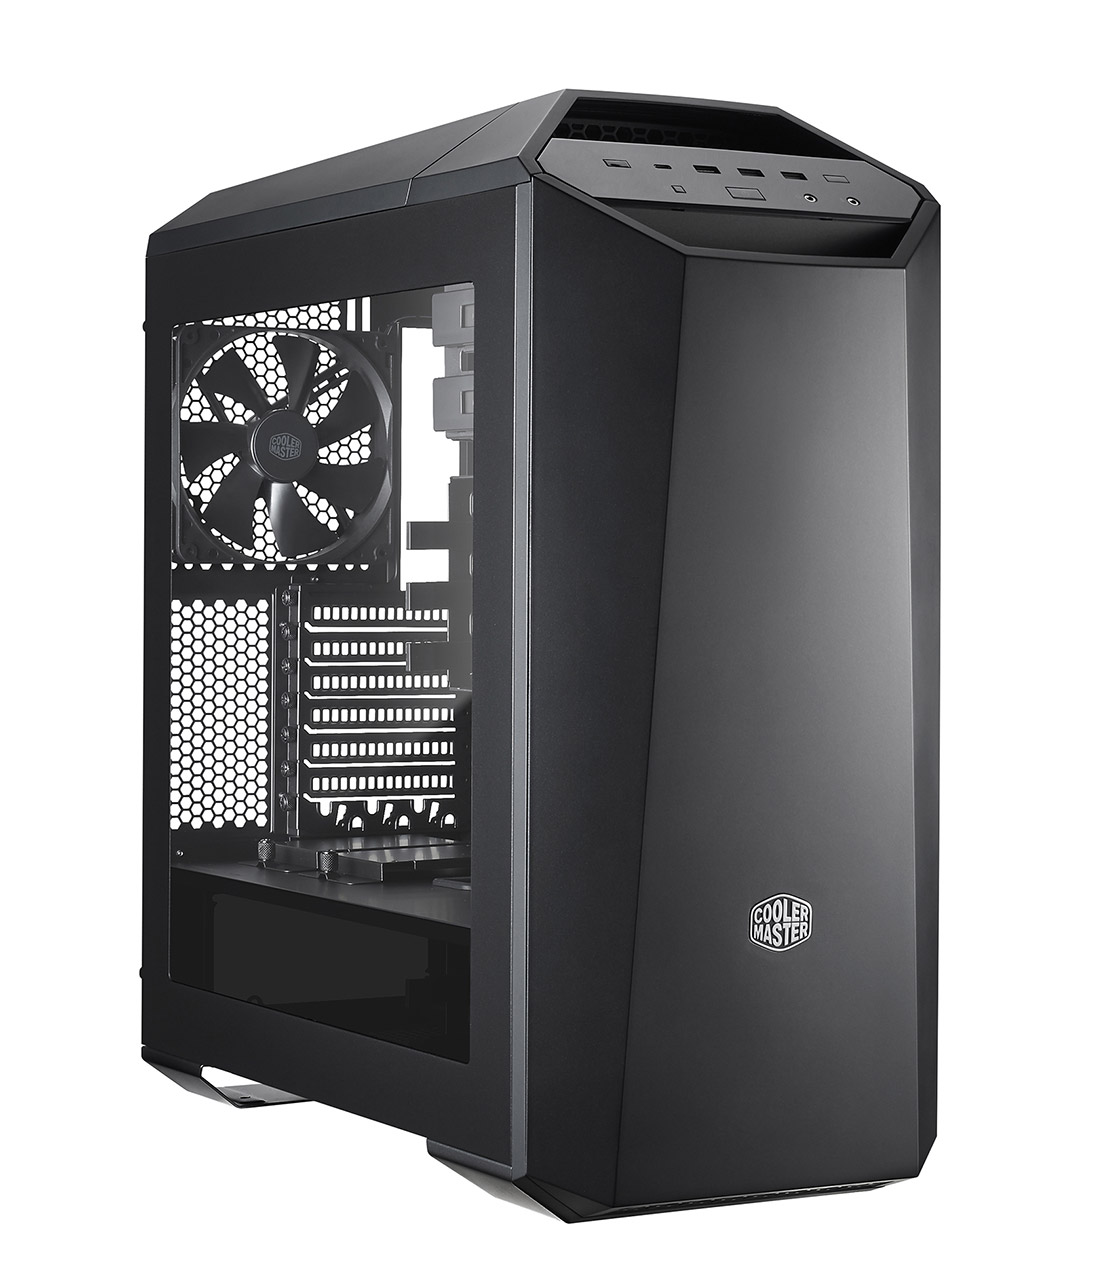 case Cooler Master miditower modular series MasterCase Maker 5, miditower ATX bez zdroje